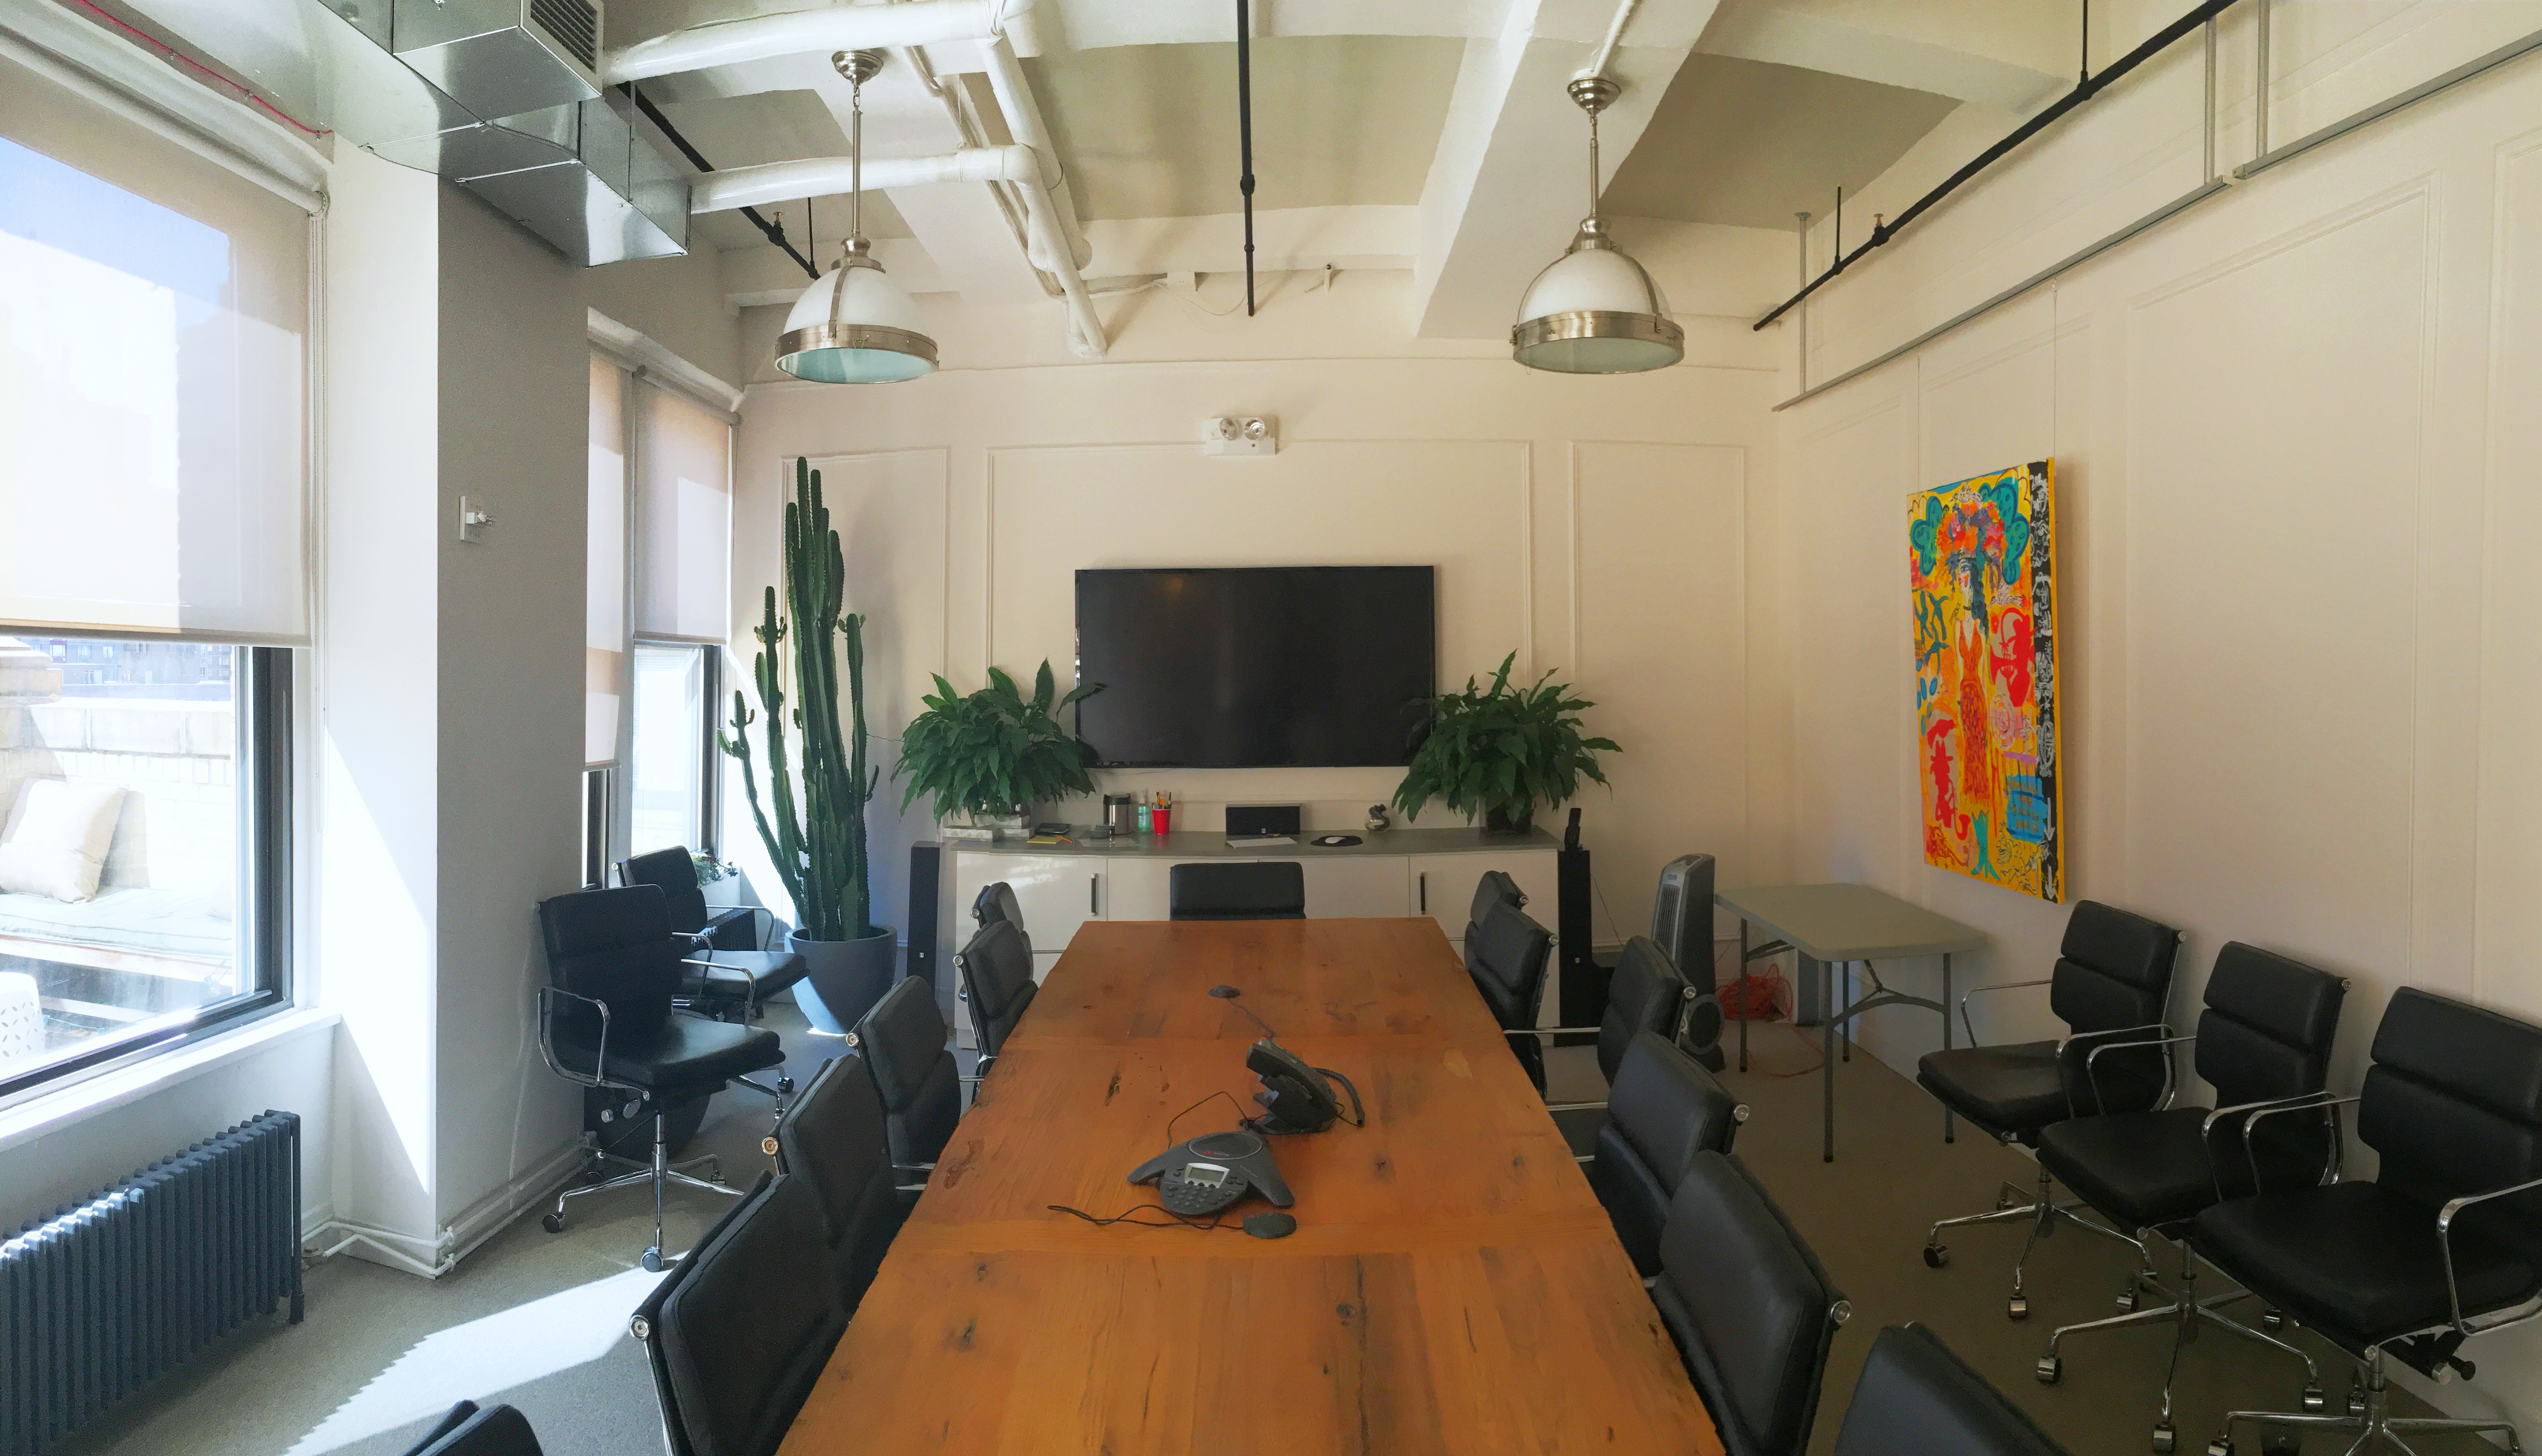 321 West 44th - Conference Room